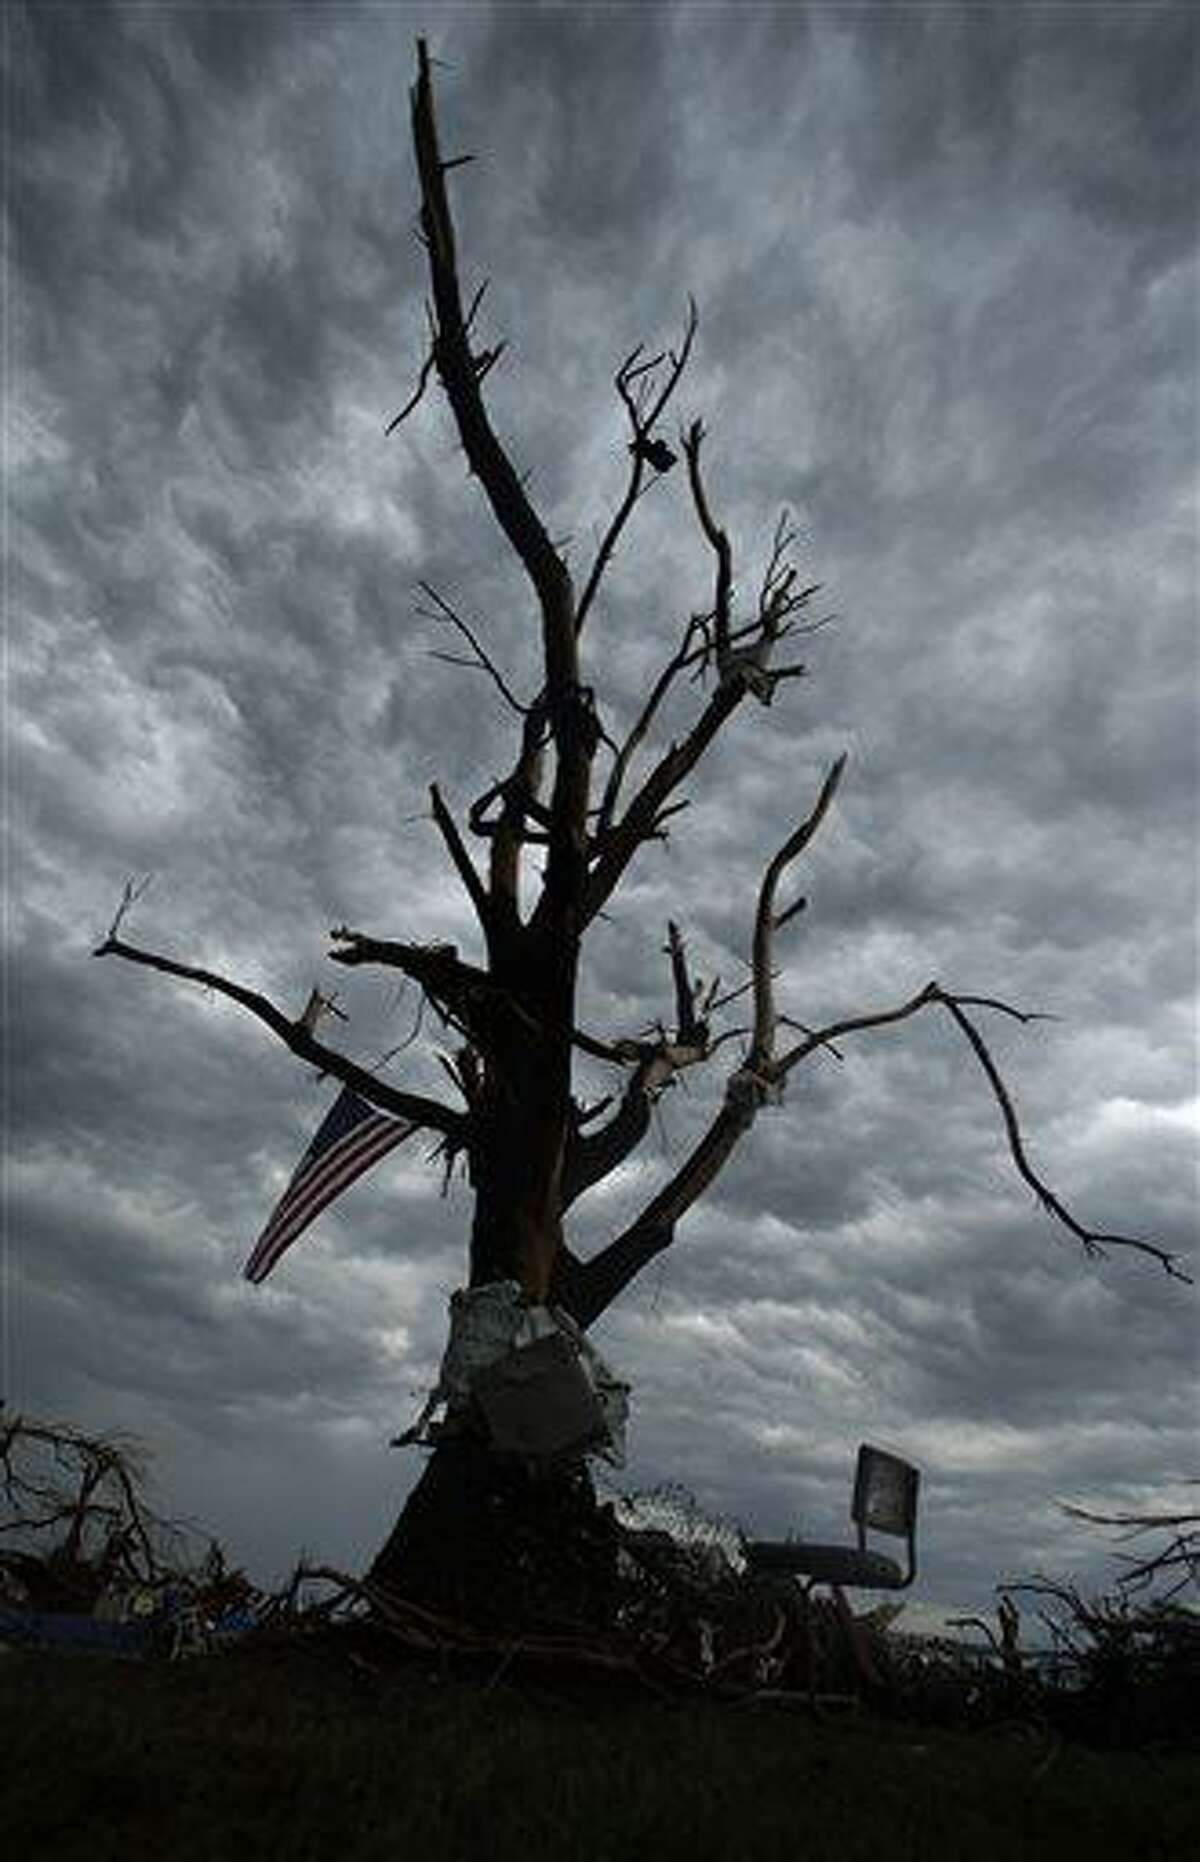 A flag hangs from tornado-ravaged tree Thursday, May 23, 2013, in Moore, Okla. Cleanup continues three days after a huge tornado roared through the Oklahoma City suburb, flattening a wide swath of homes and businesses. (AP Photo/Charlie Riedel)